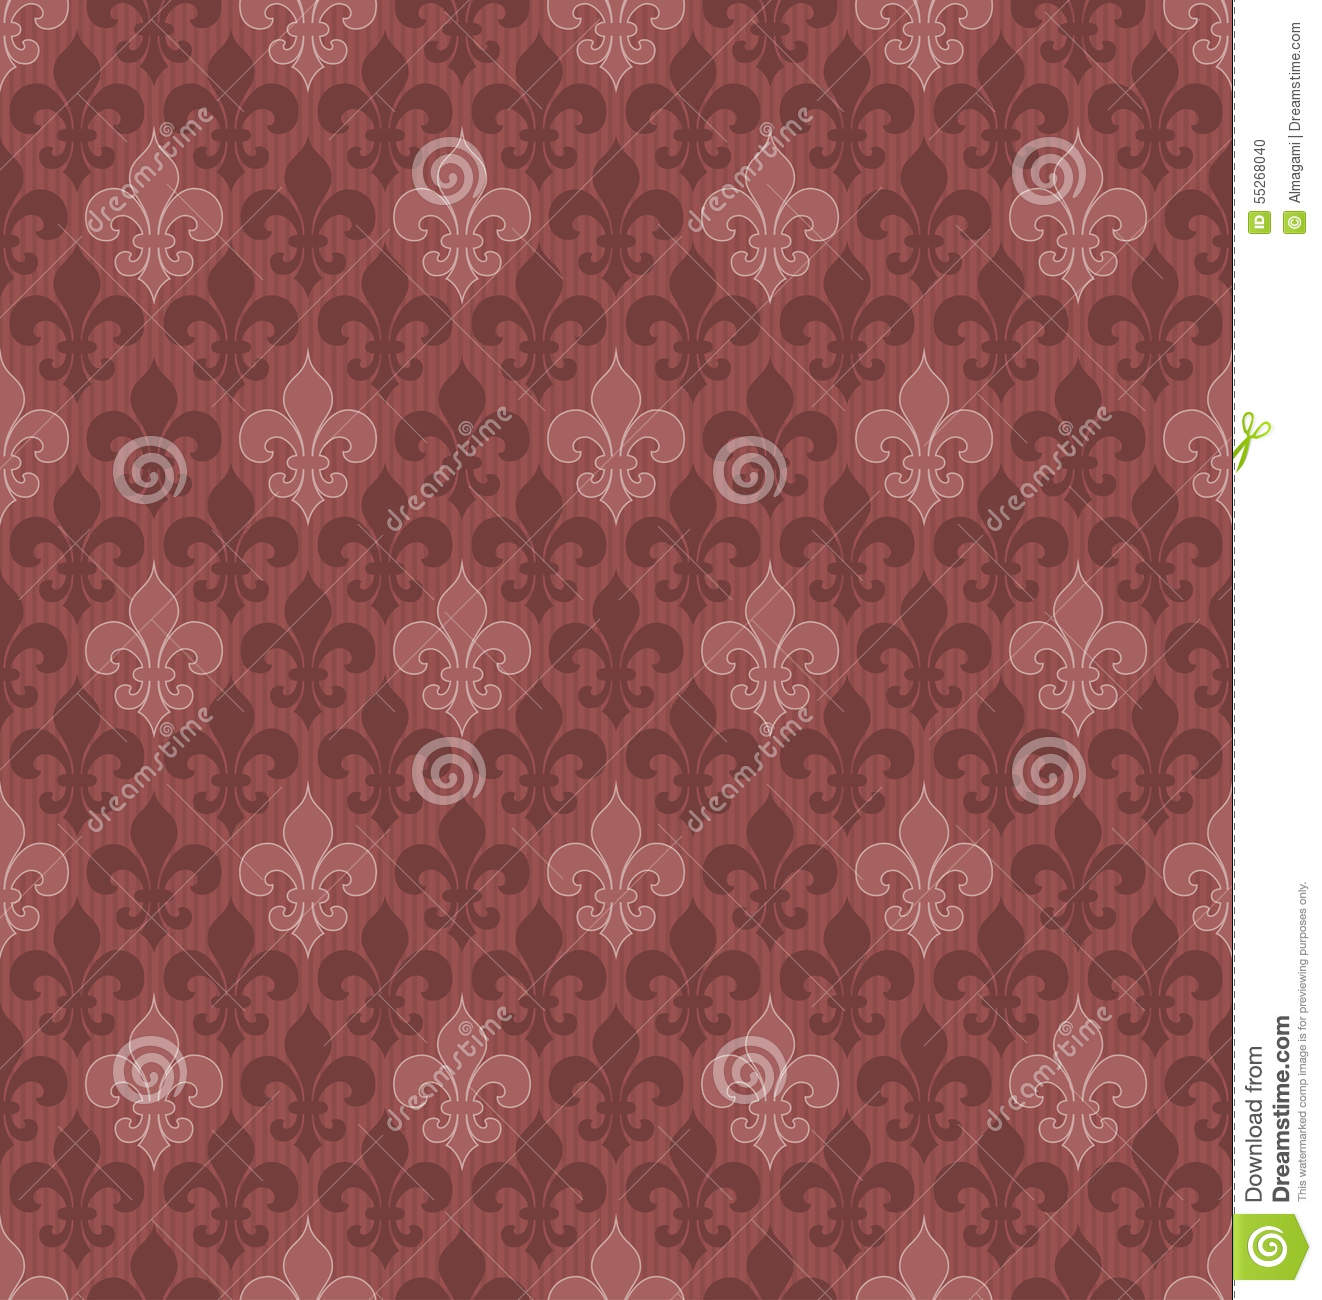 fond sans couture de fleur de lis de couleur de vin de marsala illustration de vecteur. Black Bedroom Furniture Sets. Home Design Ideas